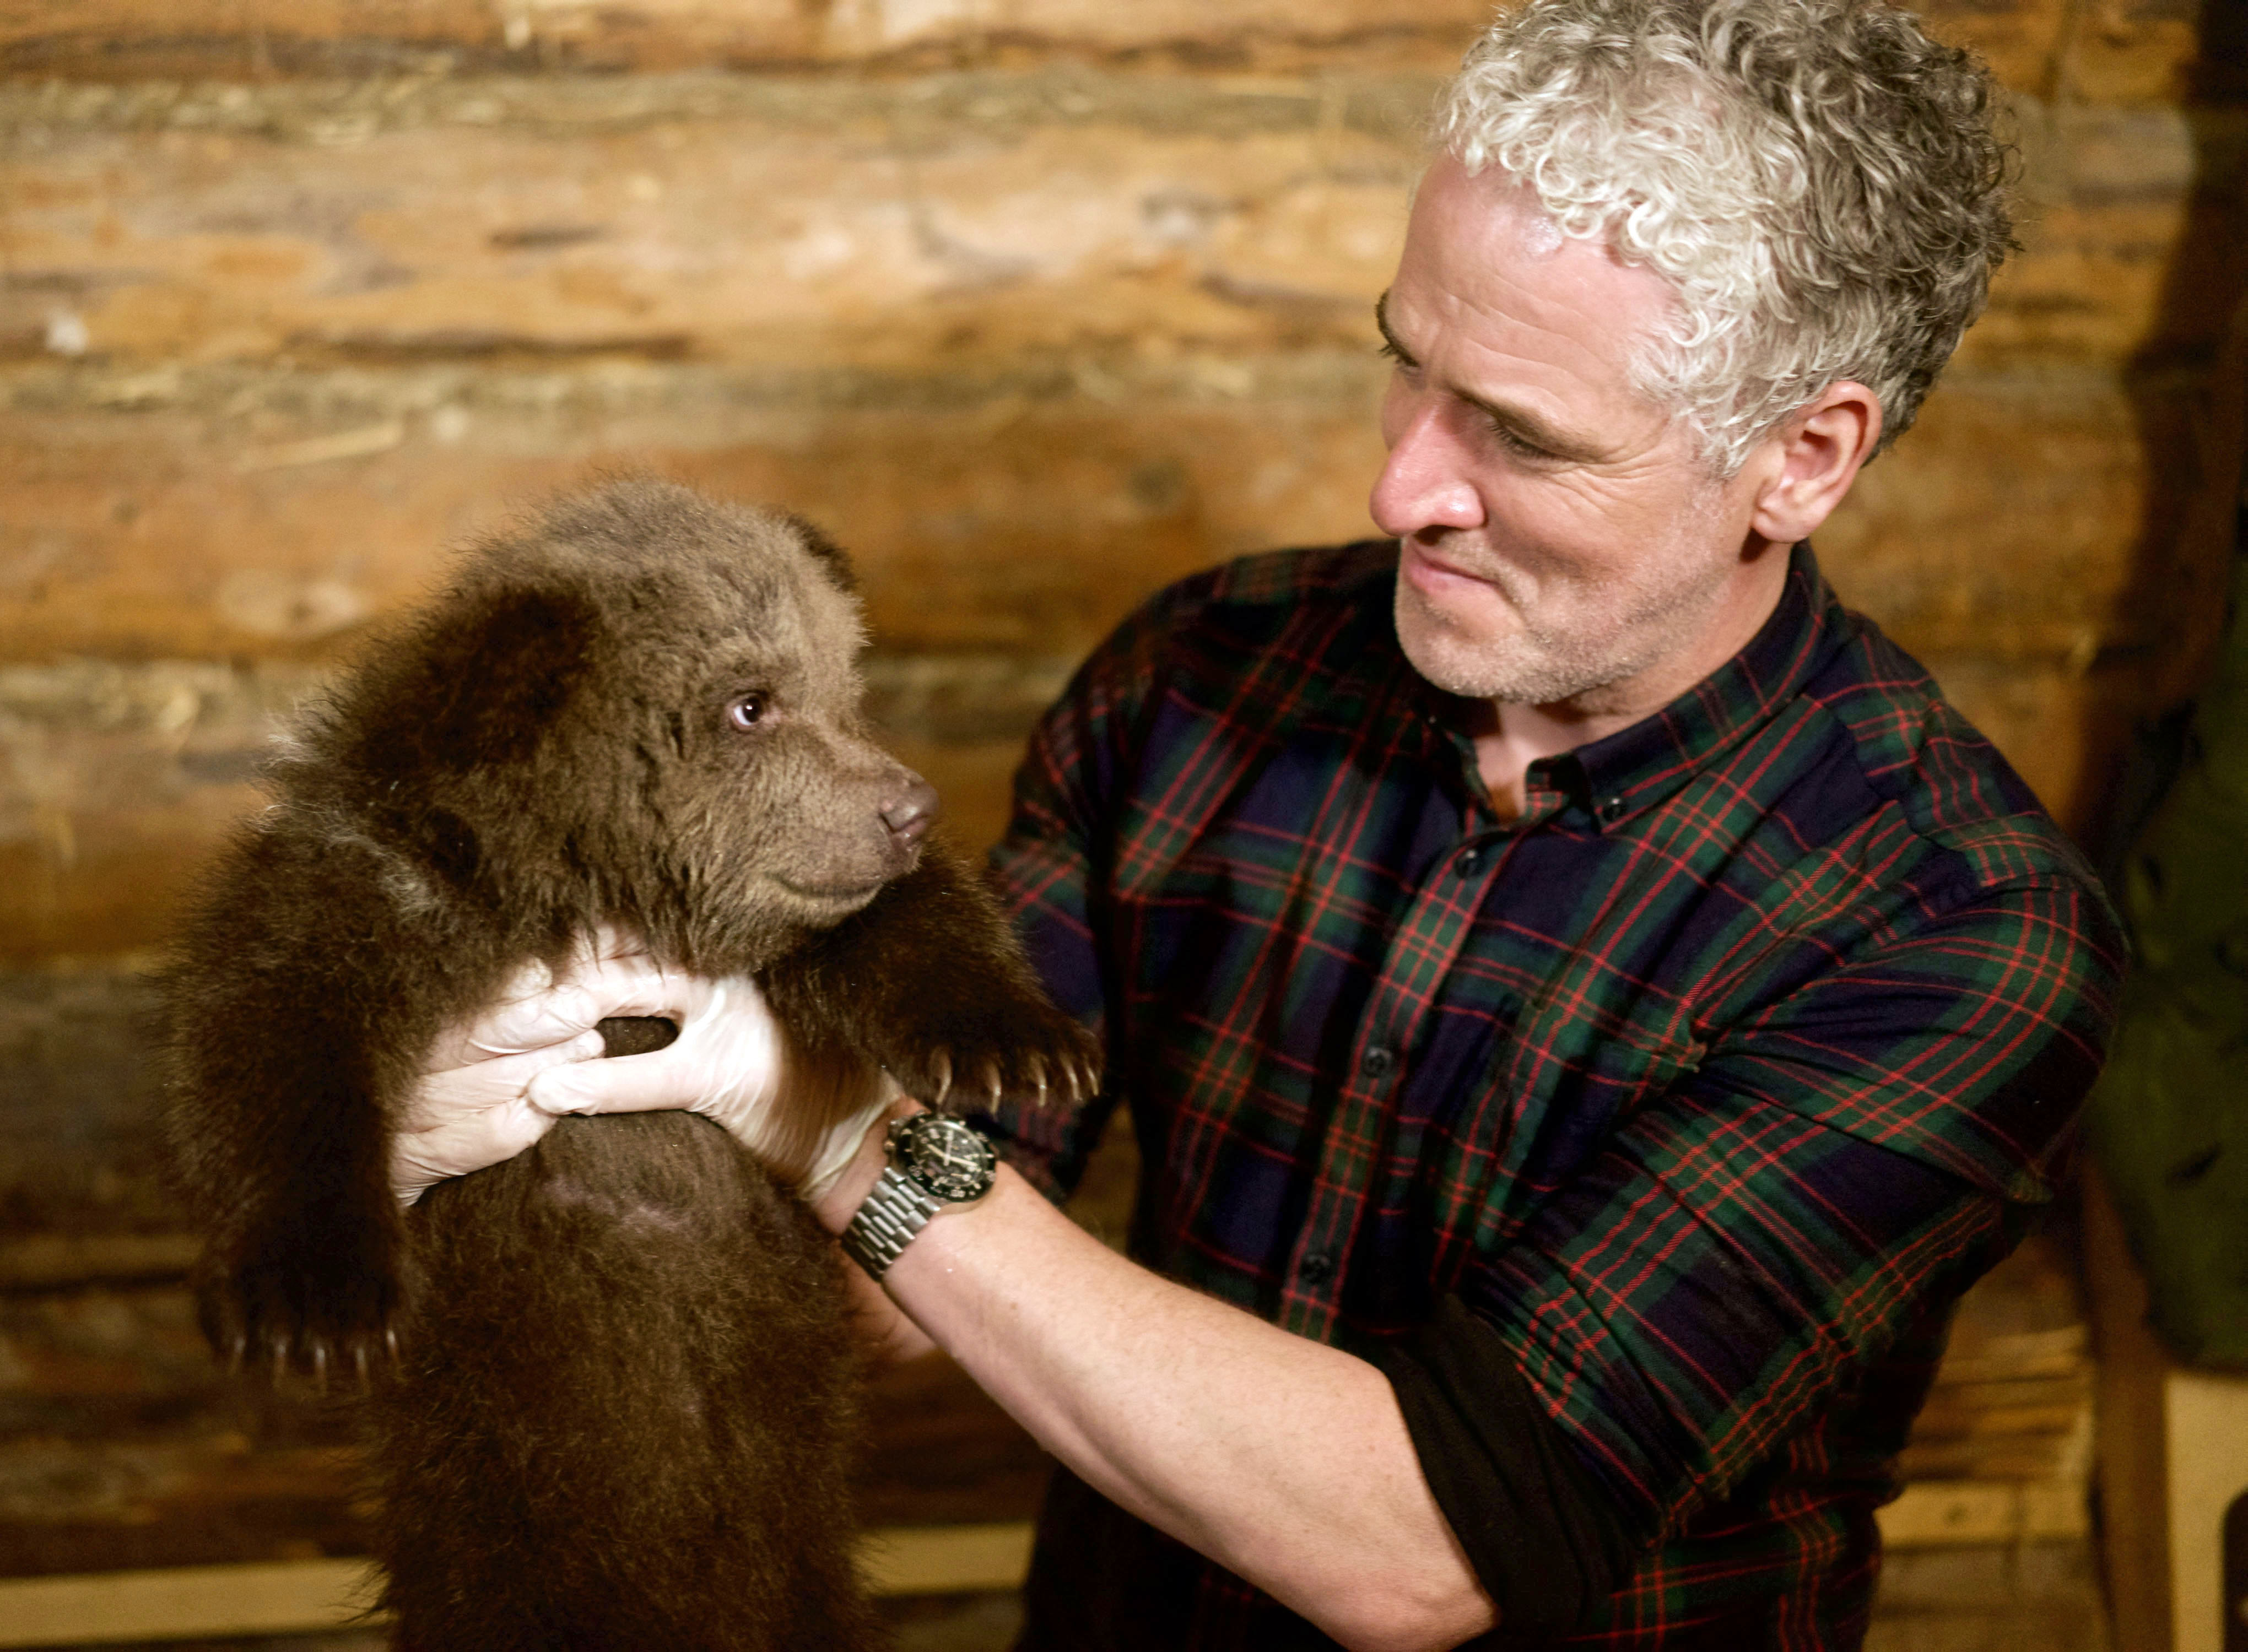 Gordon Buchanan helps to bath an eight-week-old Russian bear cub at the Orphaned Bear Rescue Centre, Bubonitsy, Russia in his new TV series. (Anwar Mamon)